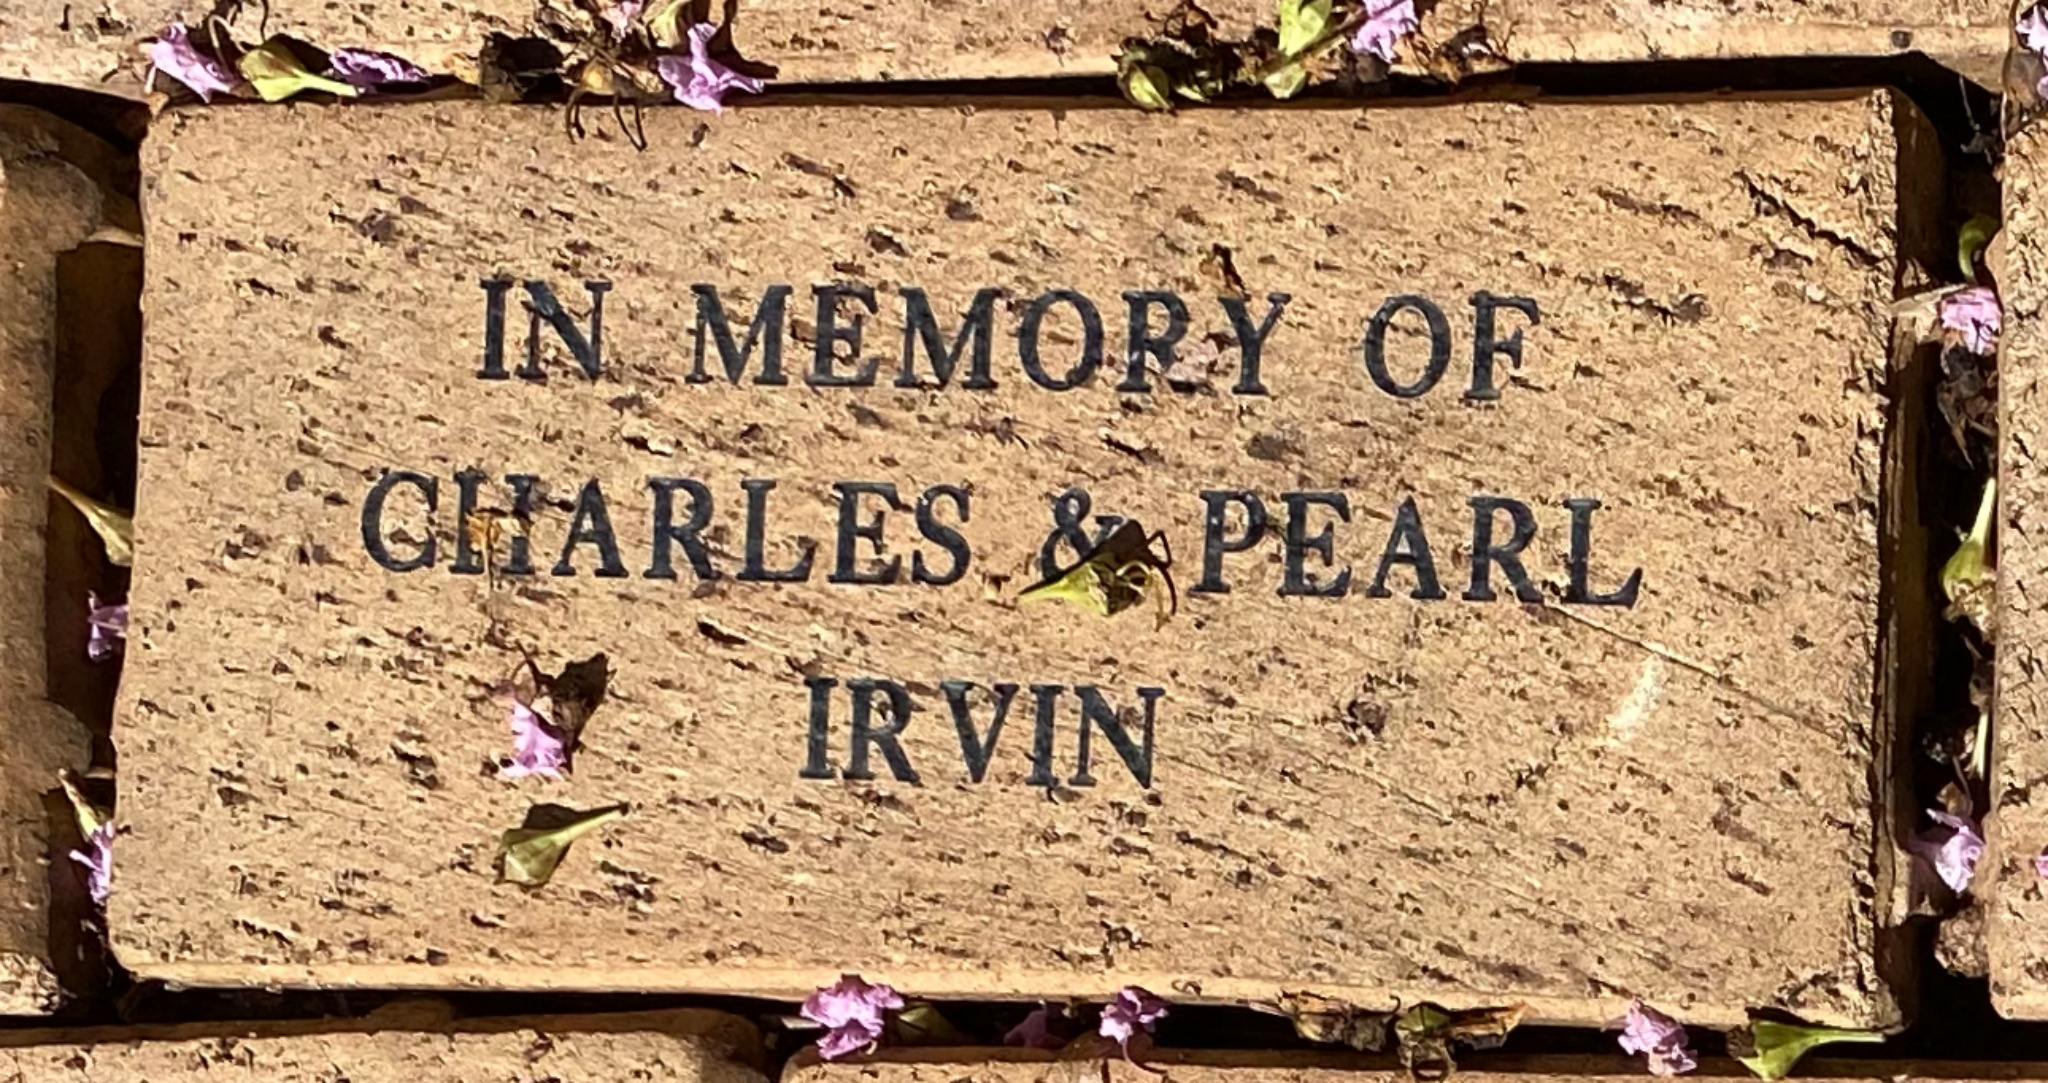 IN MEMORY OF  CHARLES & PEARL  IRVIN